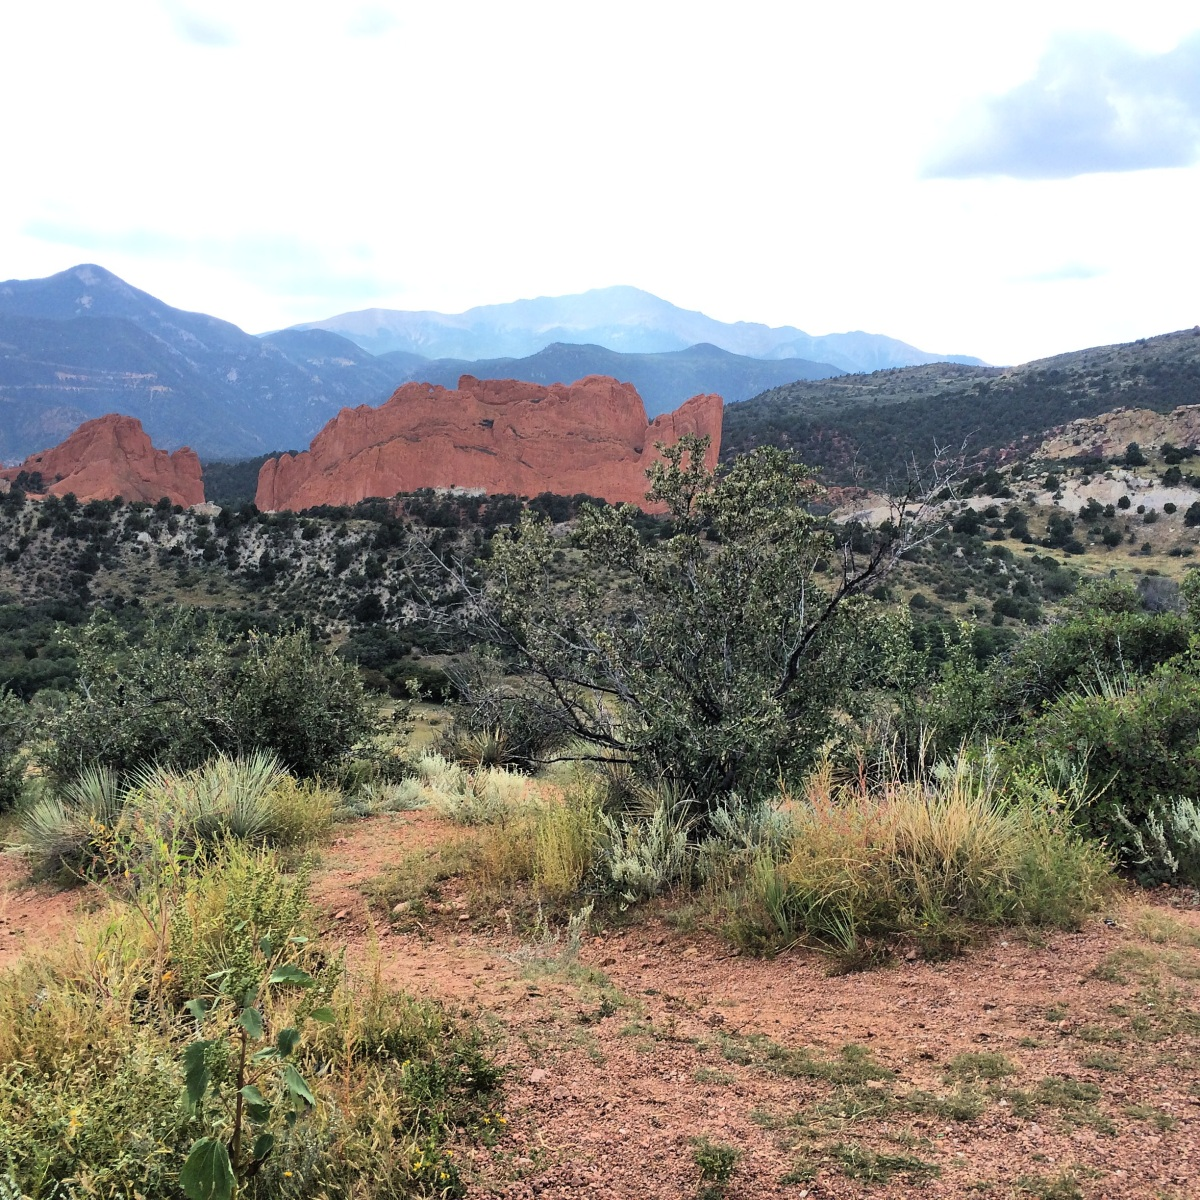 From Colorado Springs to Fort Collins, exploring Colorado's Front Range